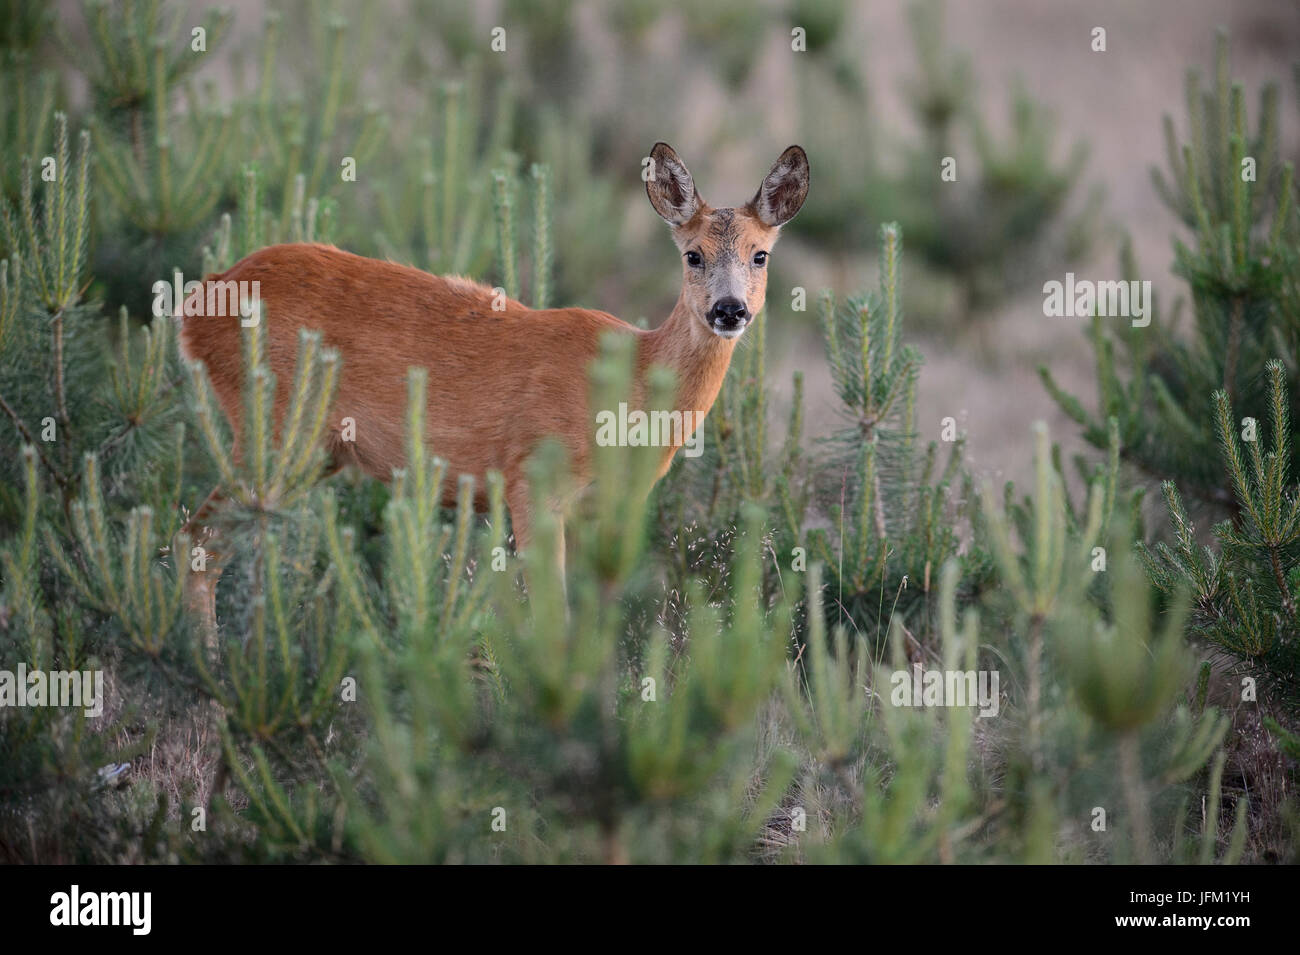 Roe deer female between youne pine trees. Hoge Veluwe National Park, Netherlands - Stock Image